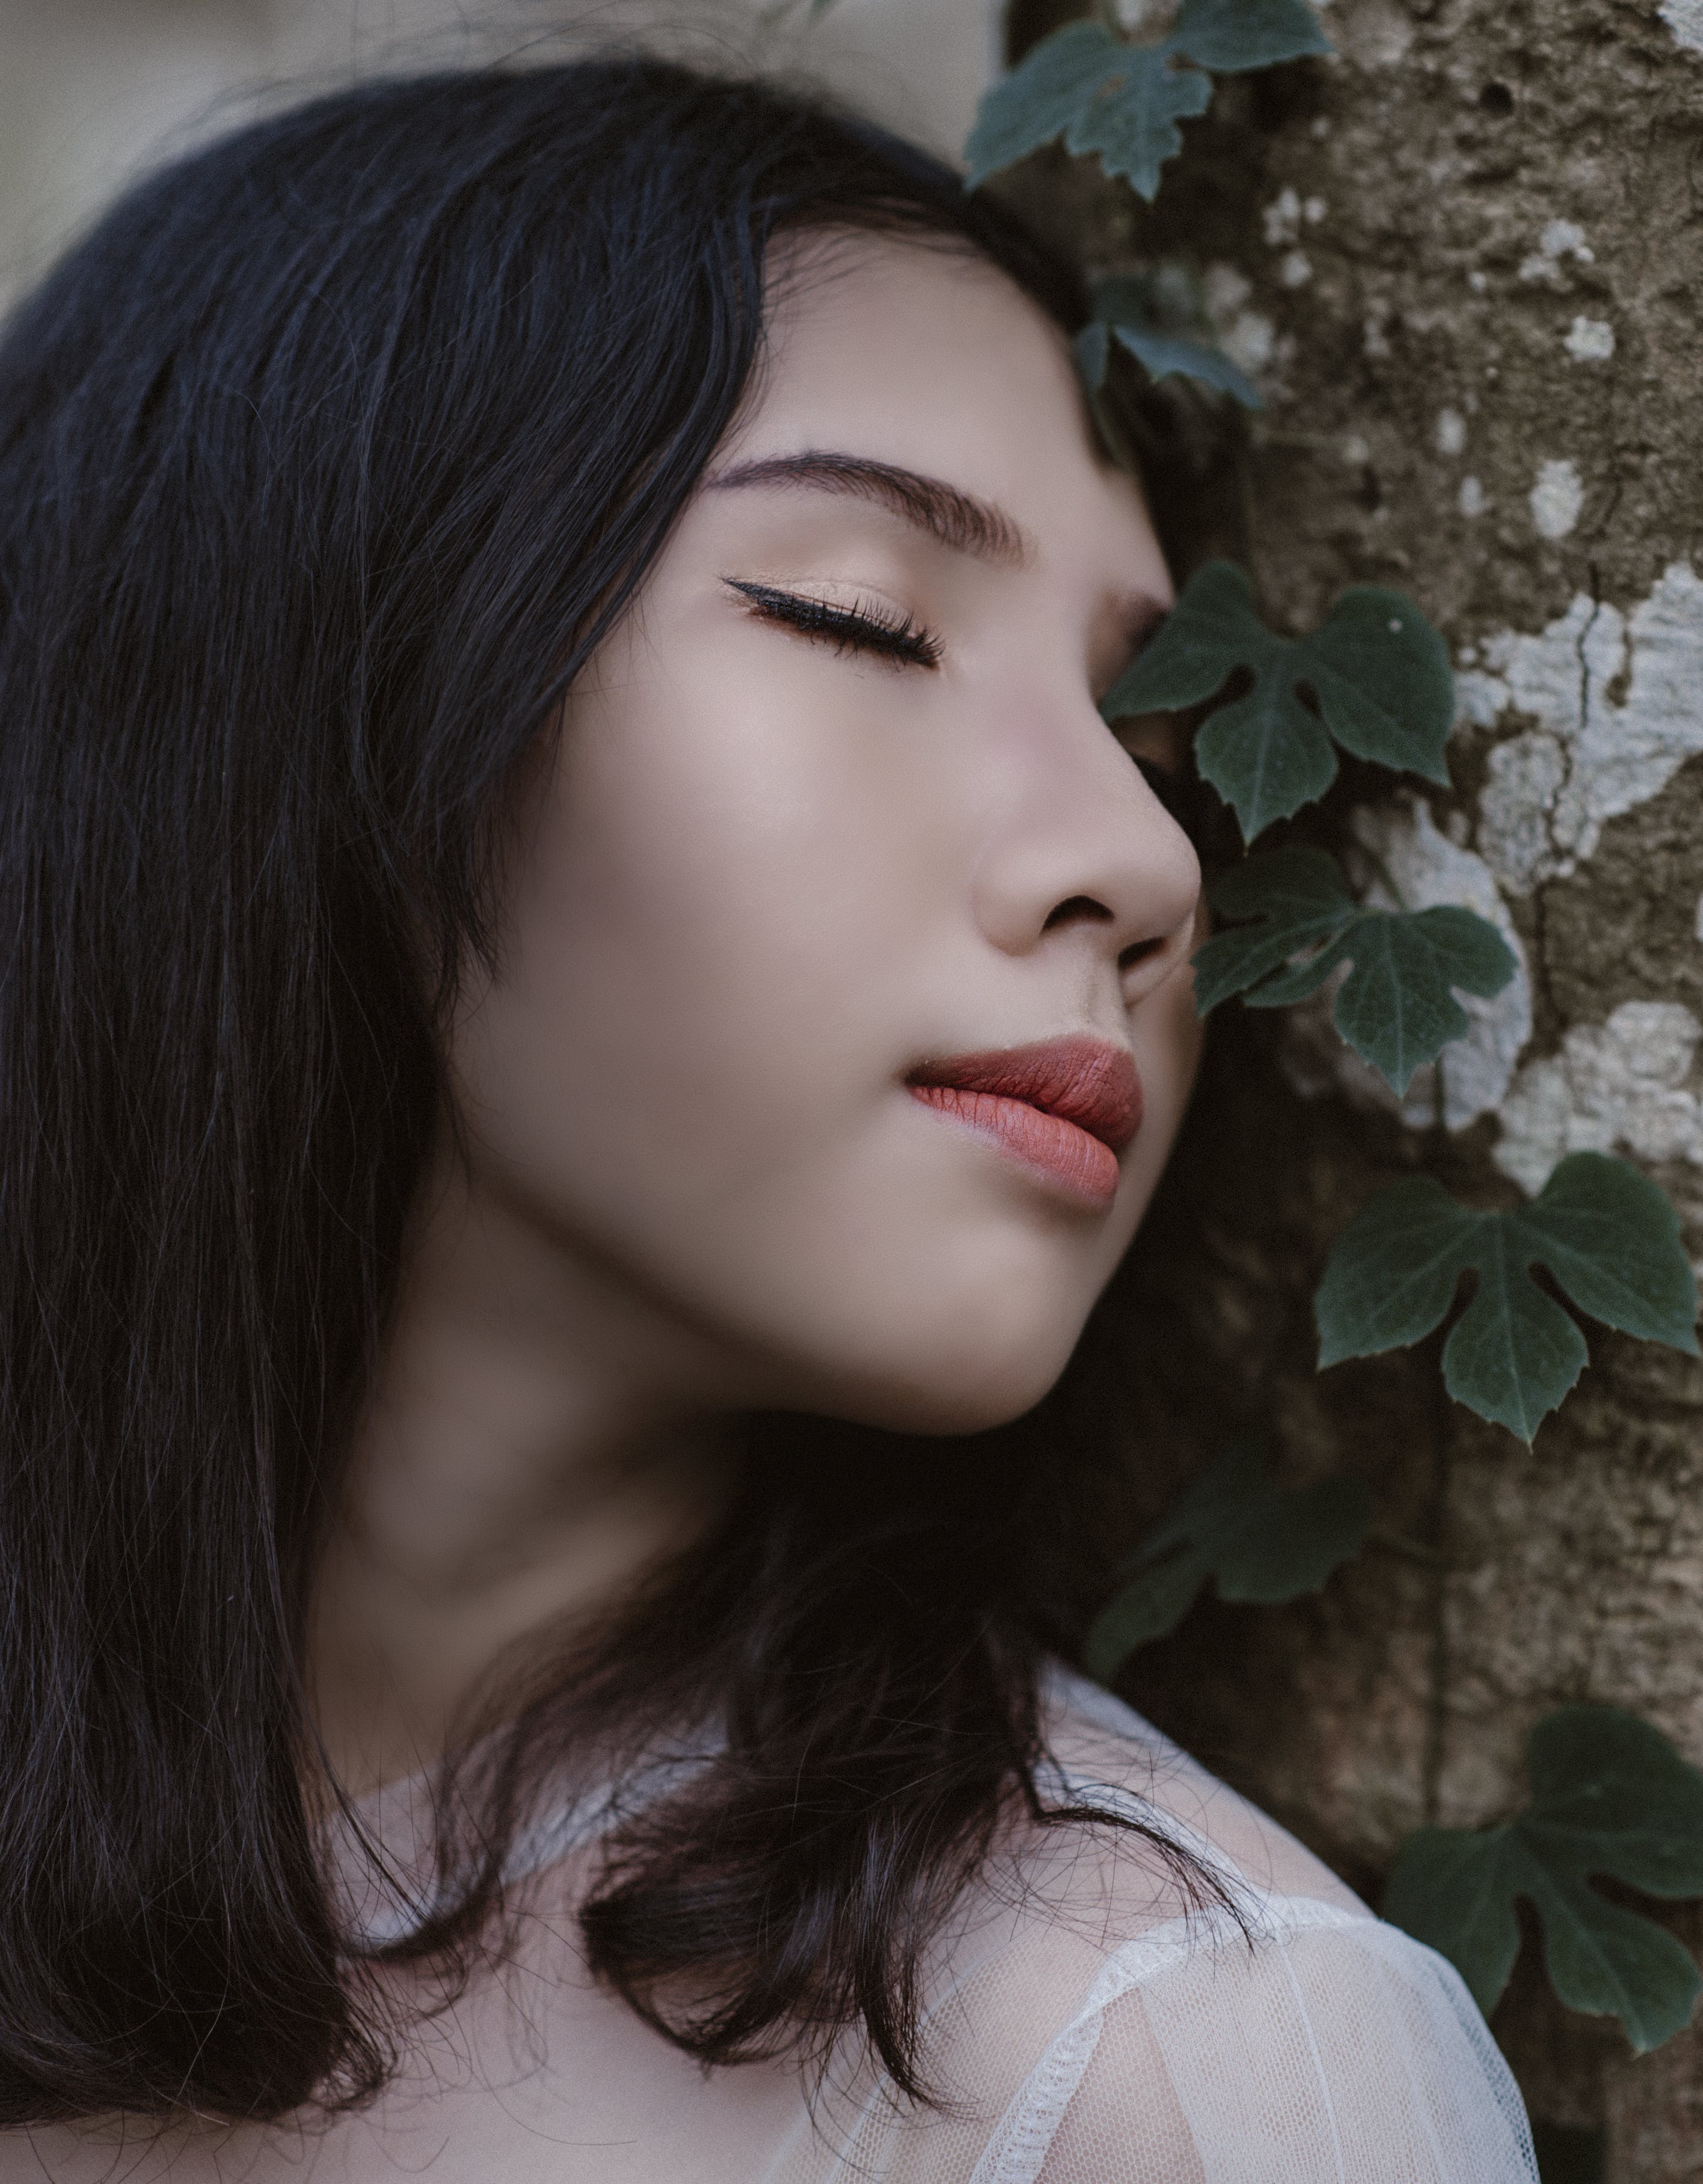 Woman Closing Her Eyes Beside Green Vine Plant